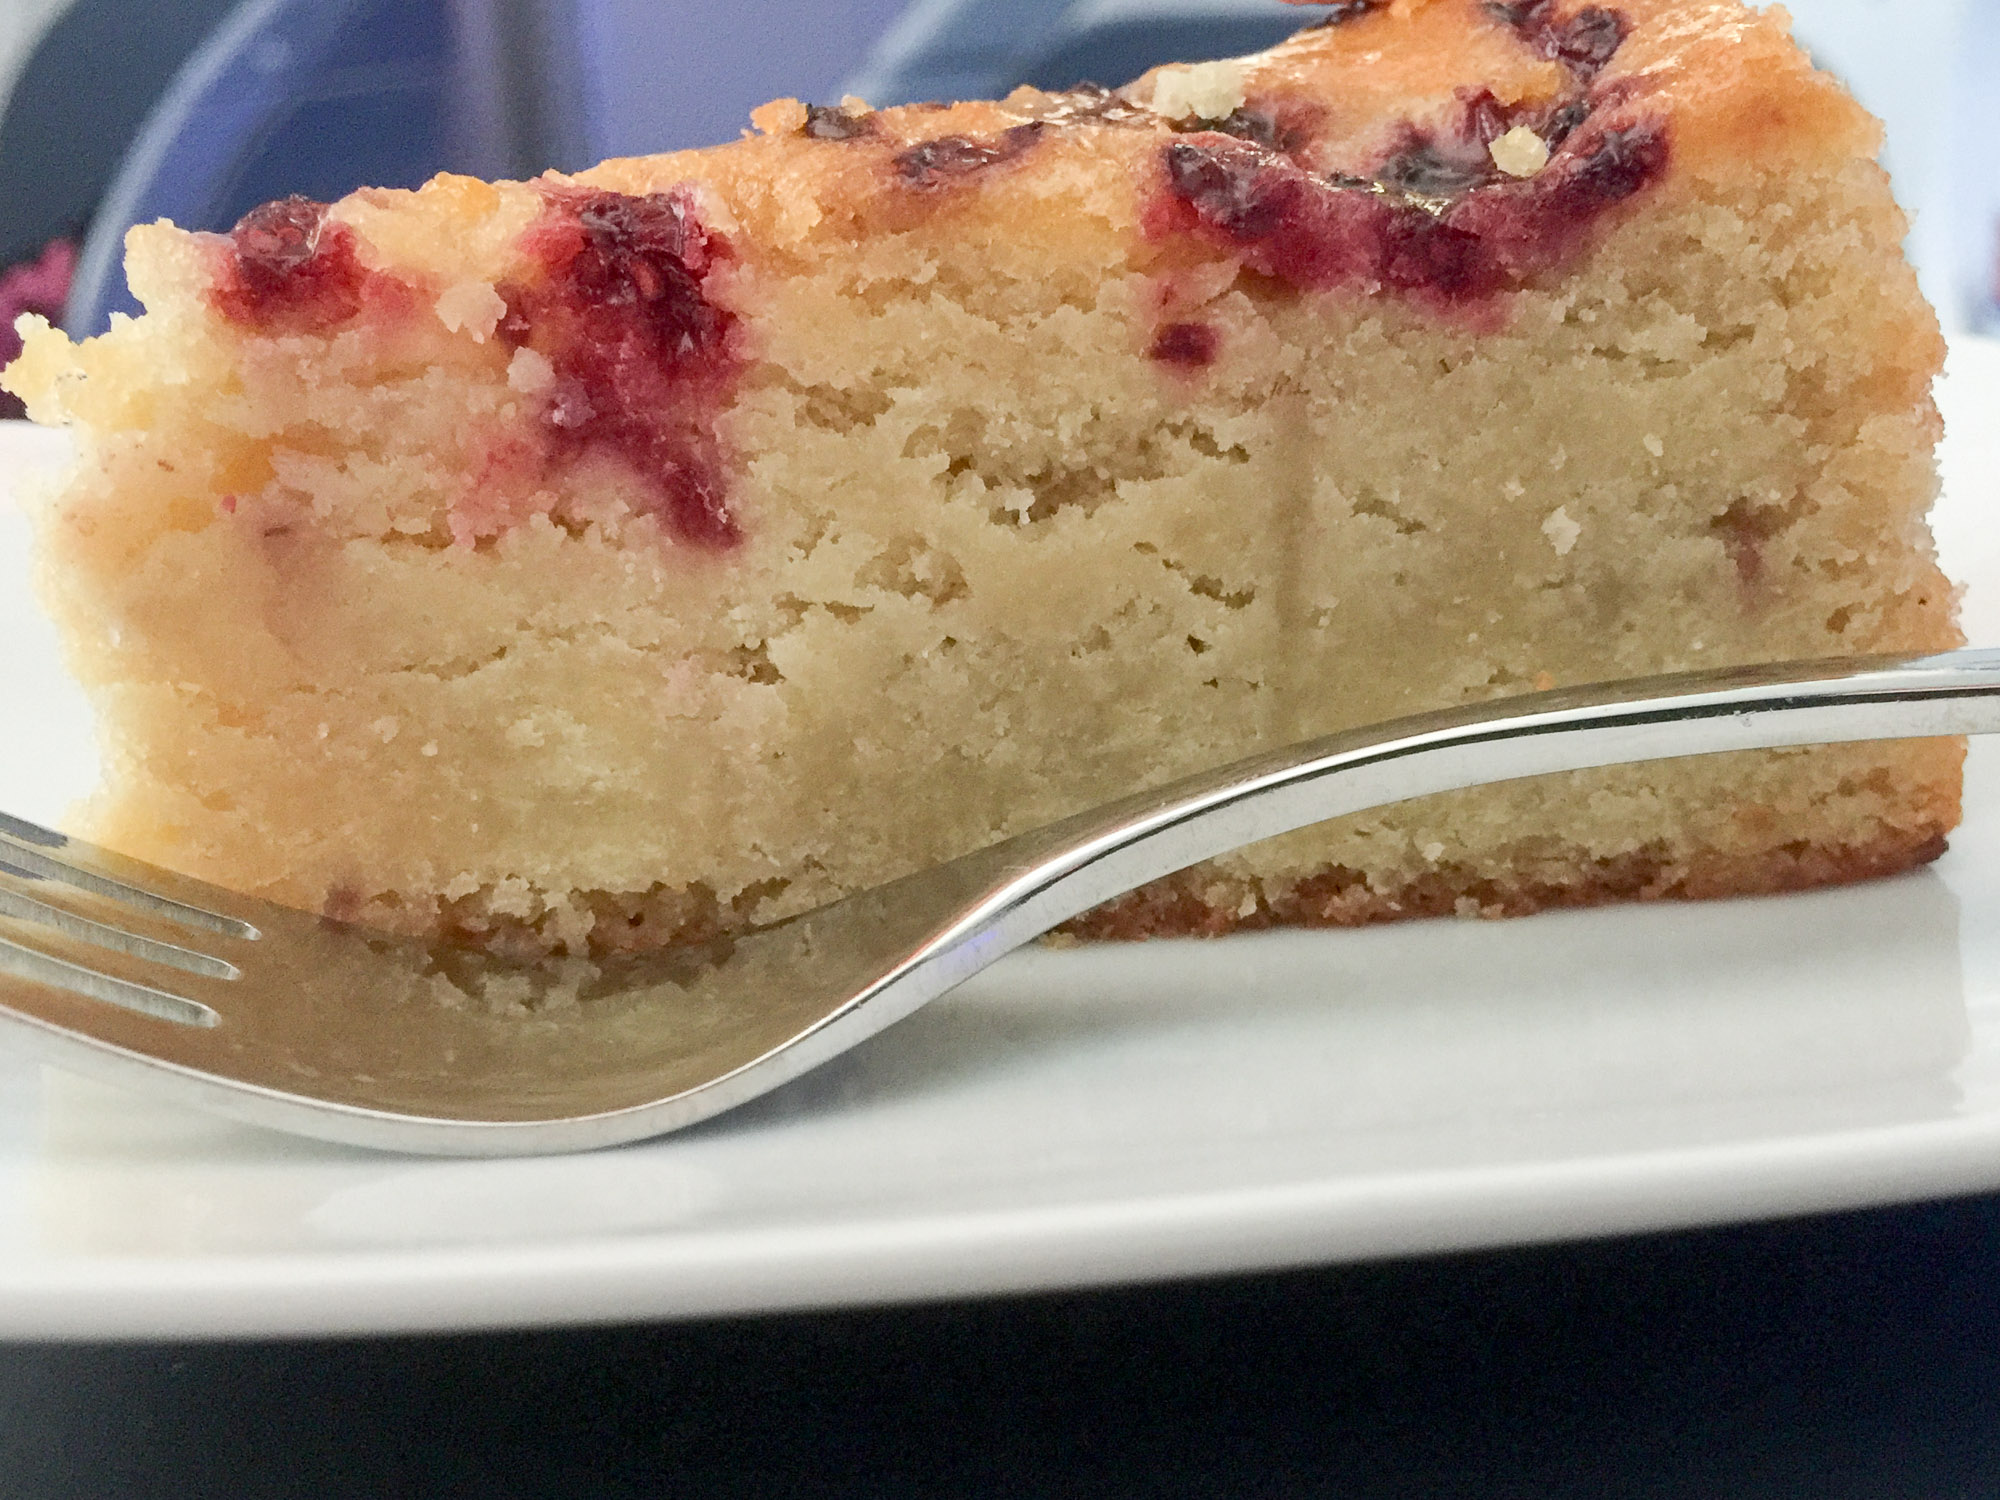 Pear and raspberry cake on AC34